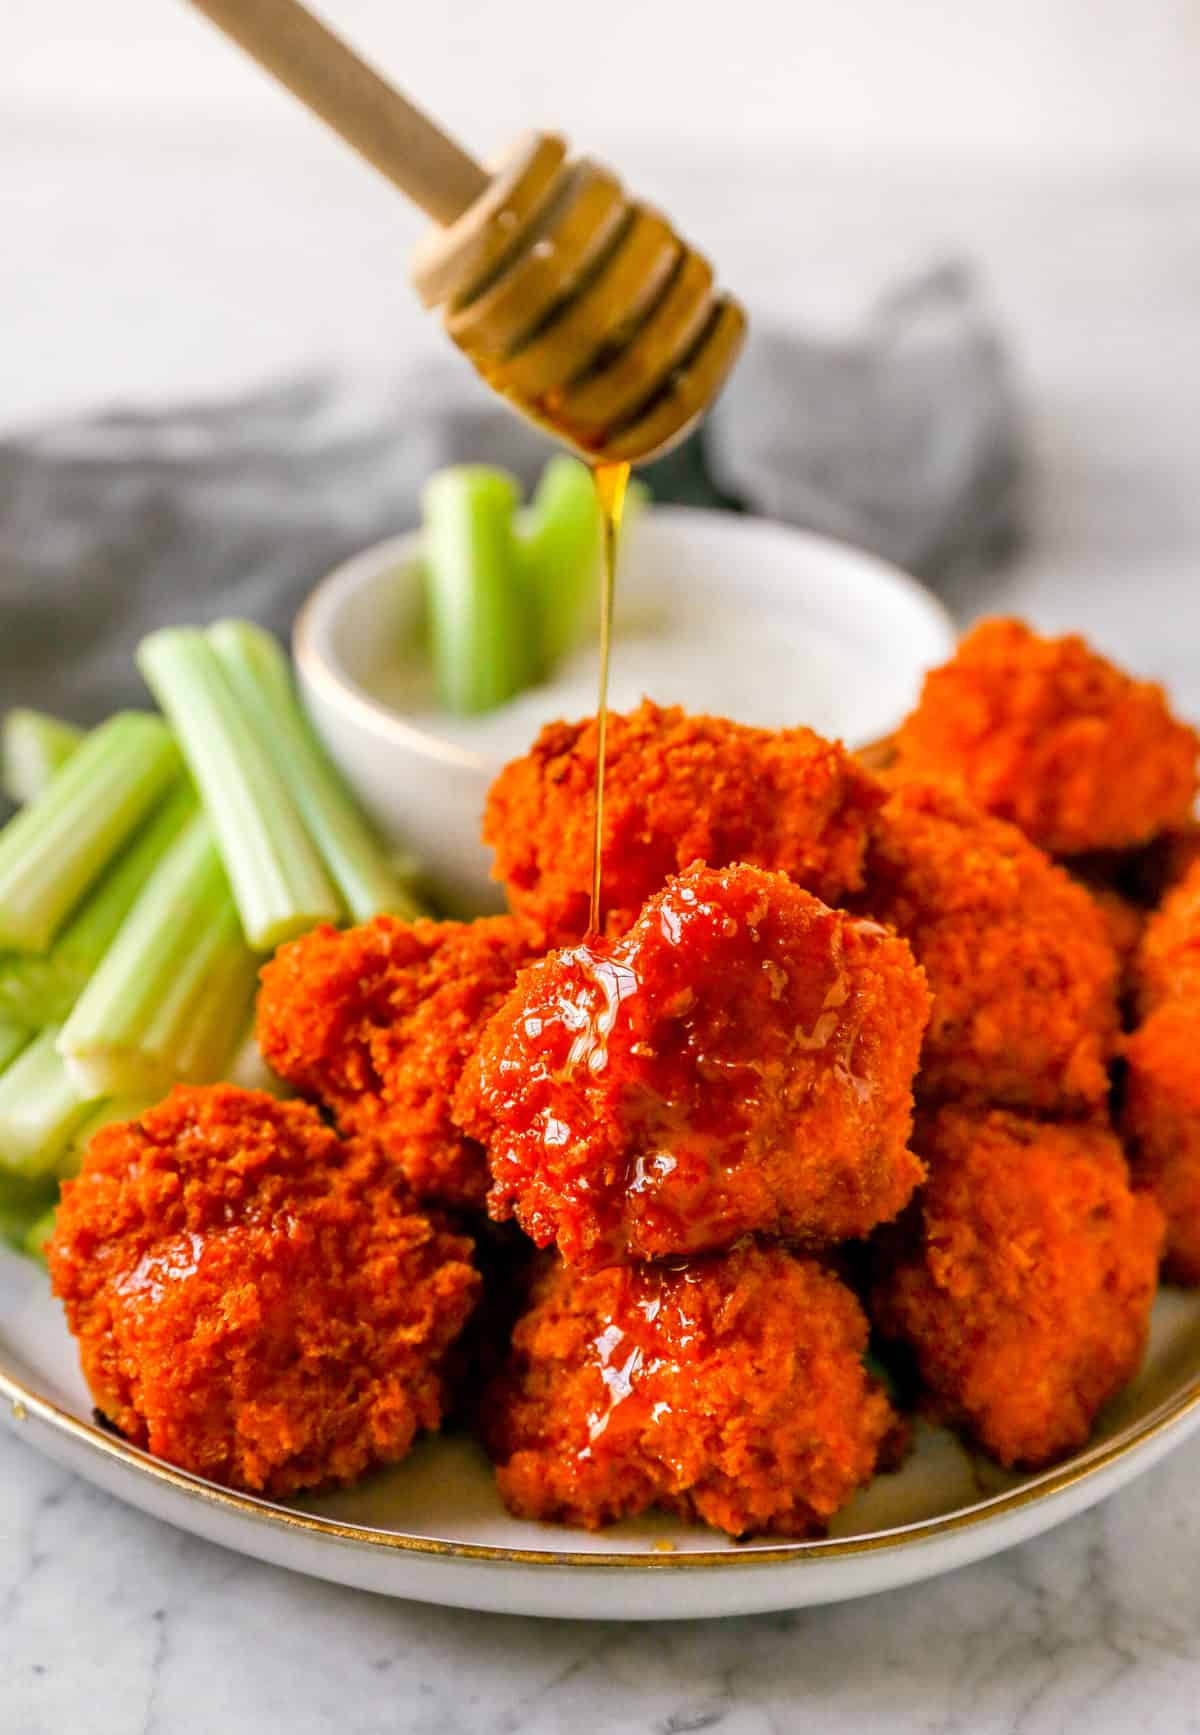 buffalo cauliflower wings on a plate drizzled with maple syrup on a dripper